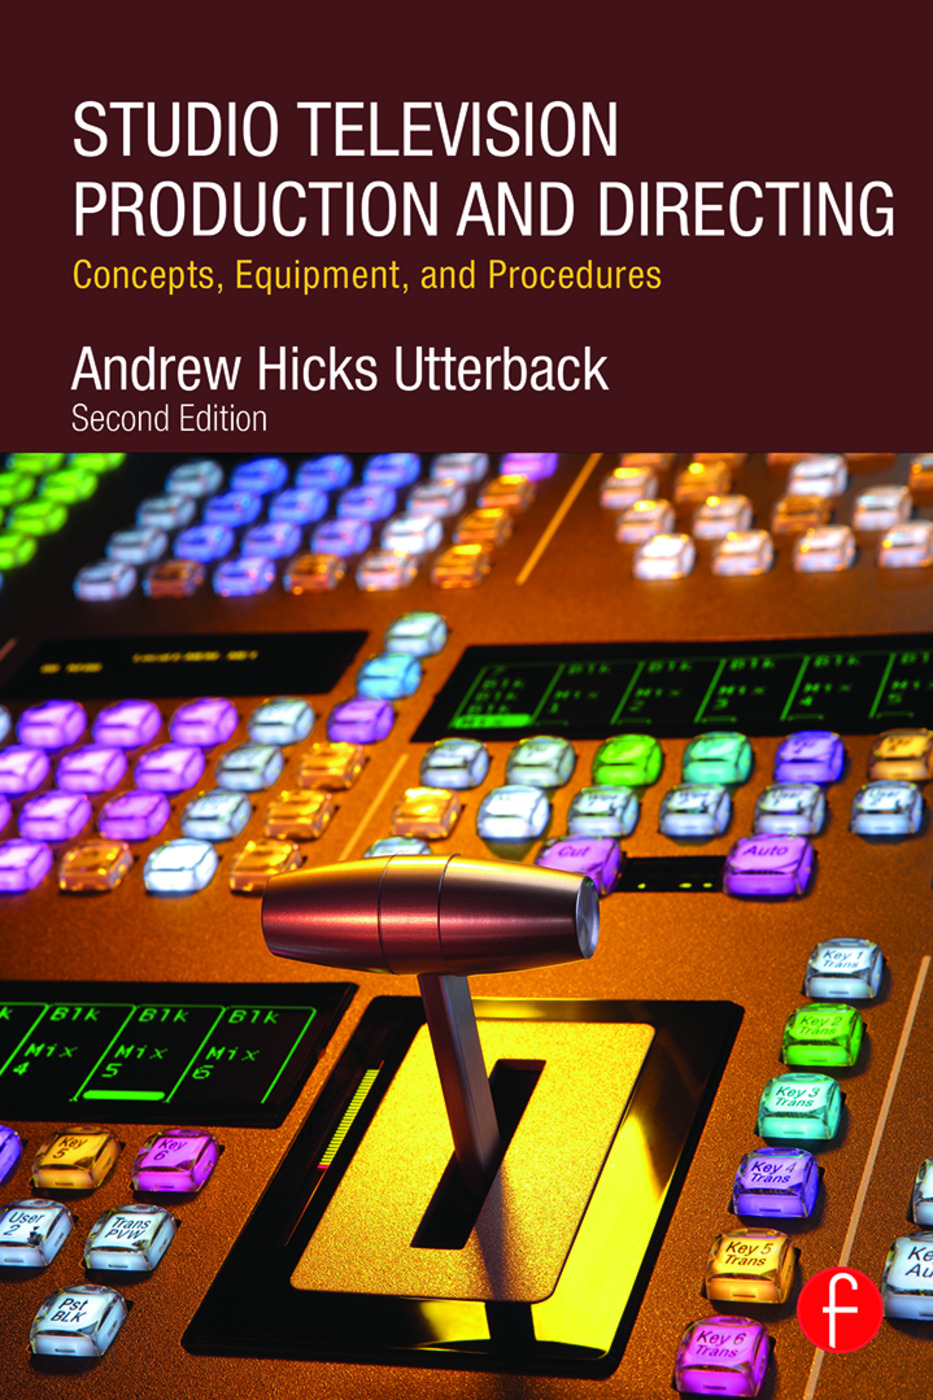 Studio Television Production and Directing: Concepts, Equipment, and Procedures book cover